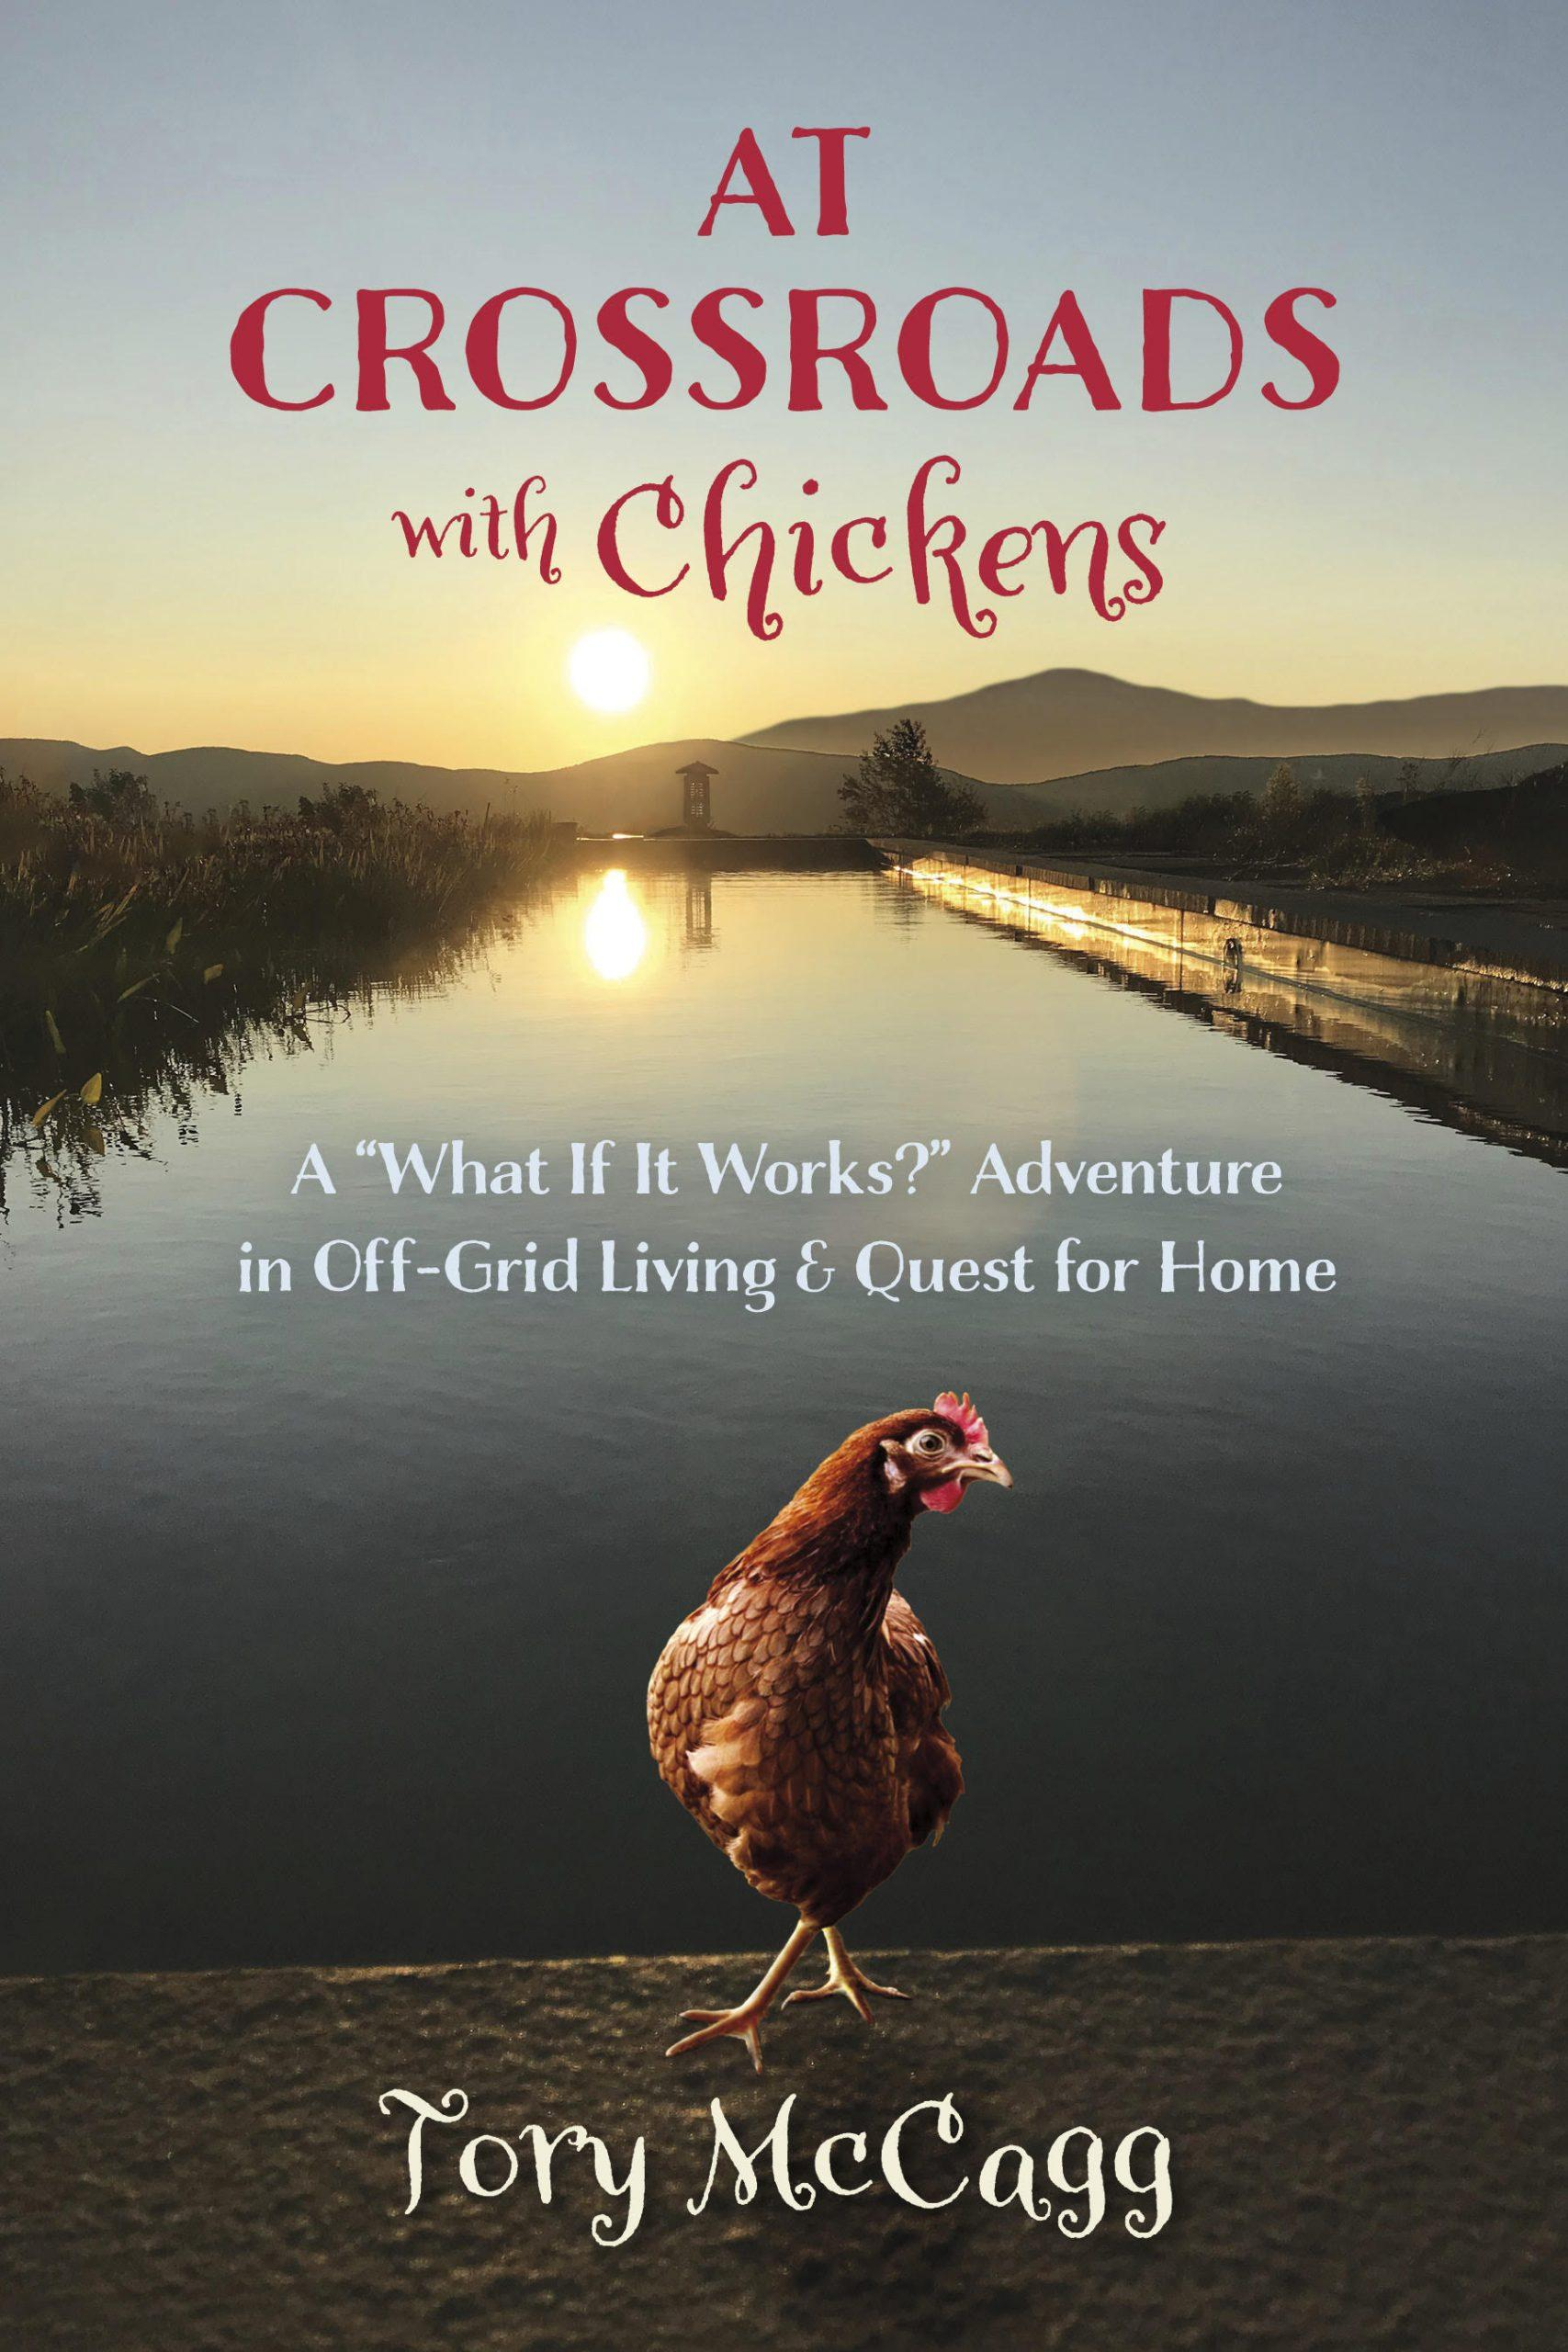 """At Crossroads with Chickens: A """"What If It Works?"""" Adventure in Off-Grid Living & Quest for Home by Tory McCagg, $23 @amazon.com"""